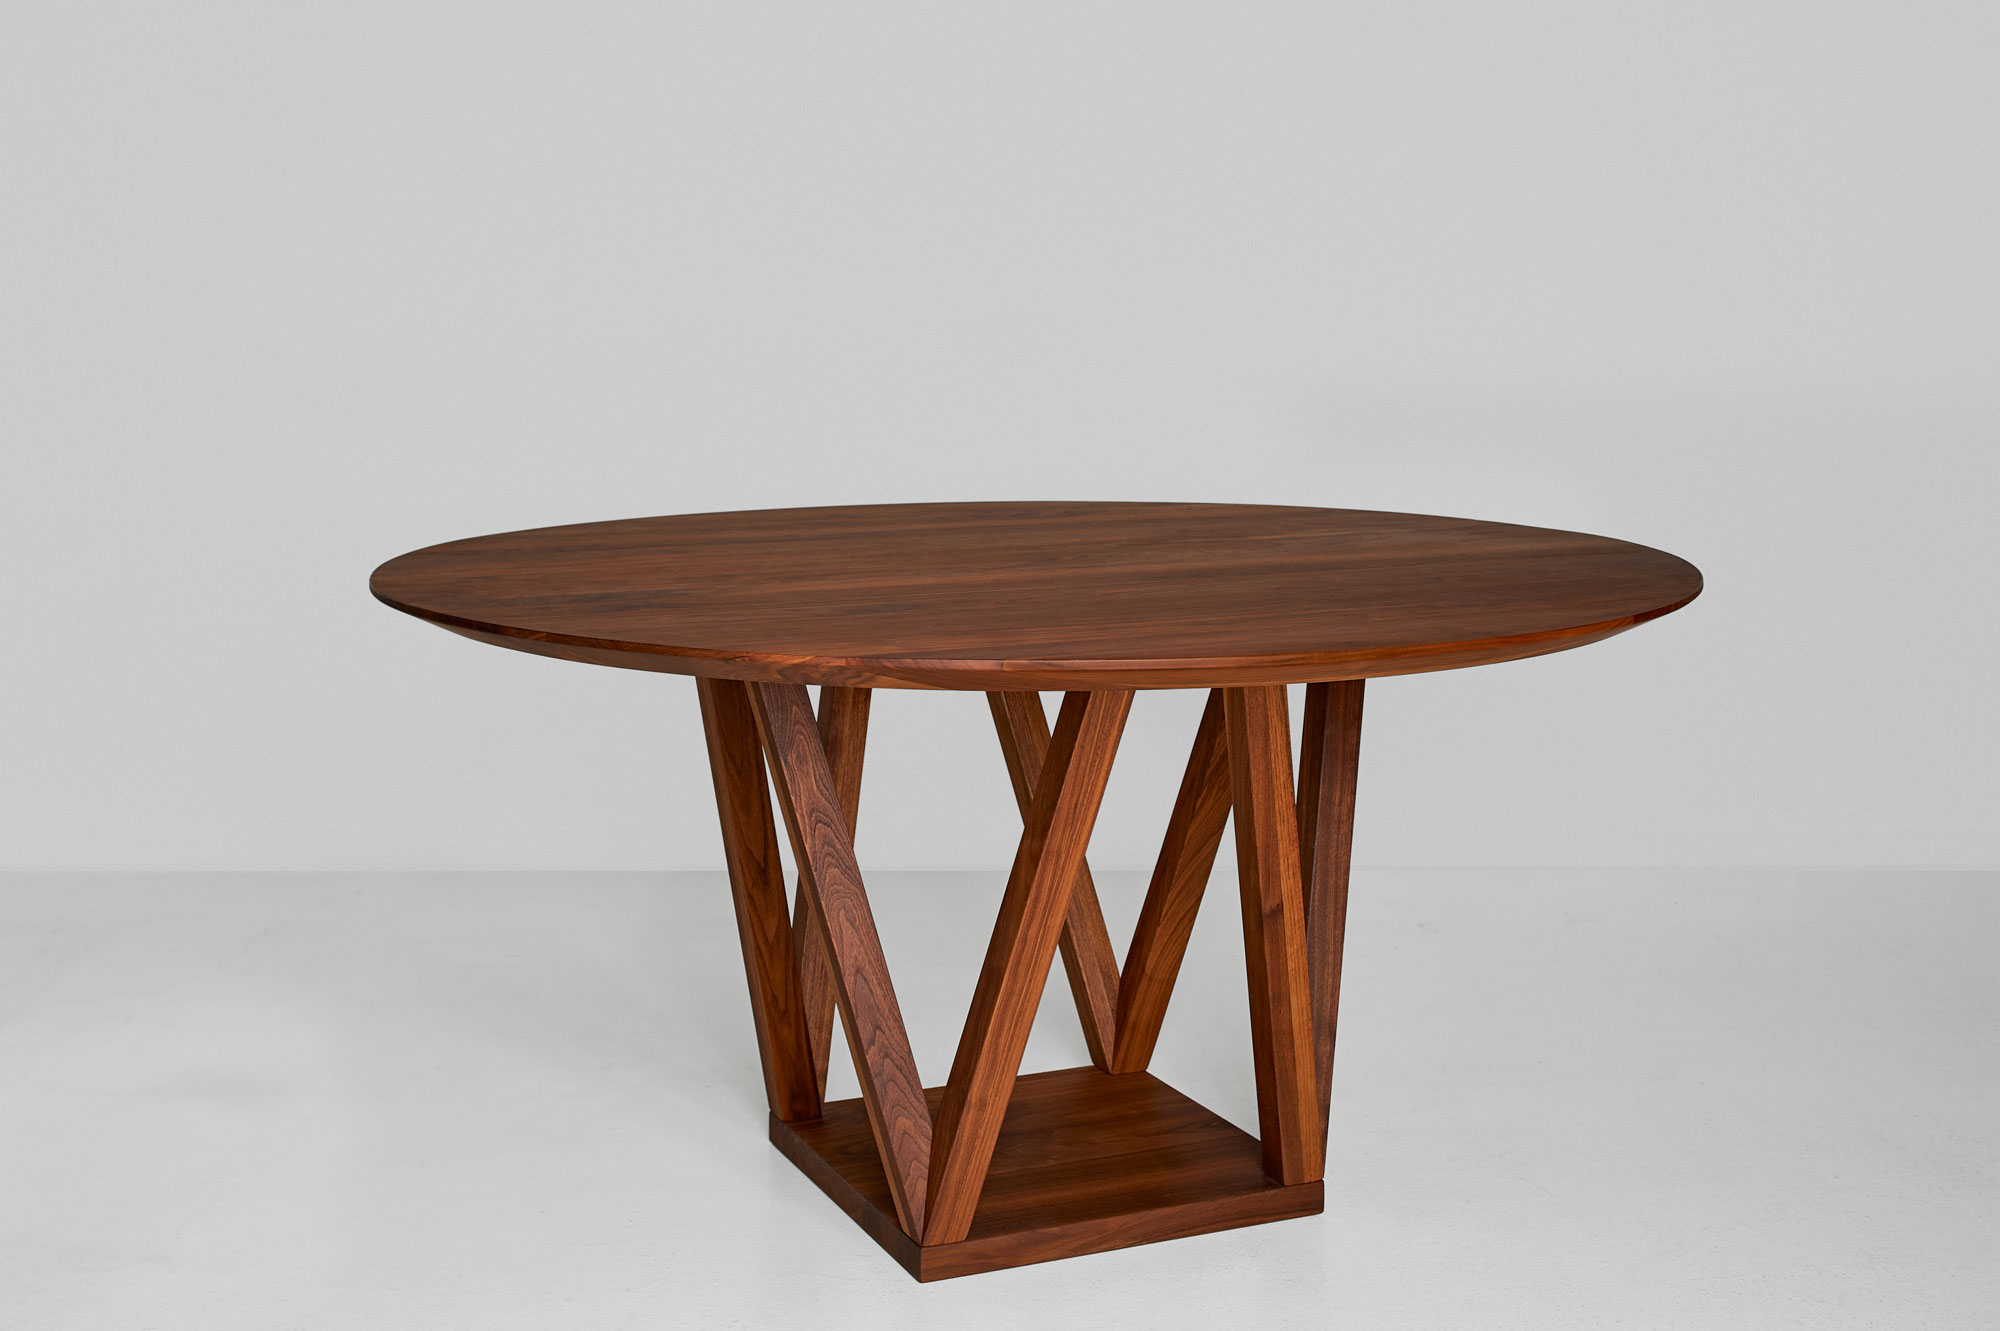 Round Designer Table CREO 0993 custom made in solid wood by vitamin design